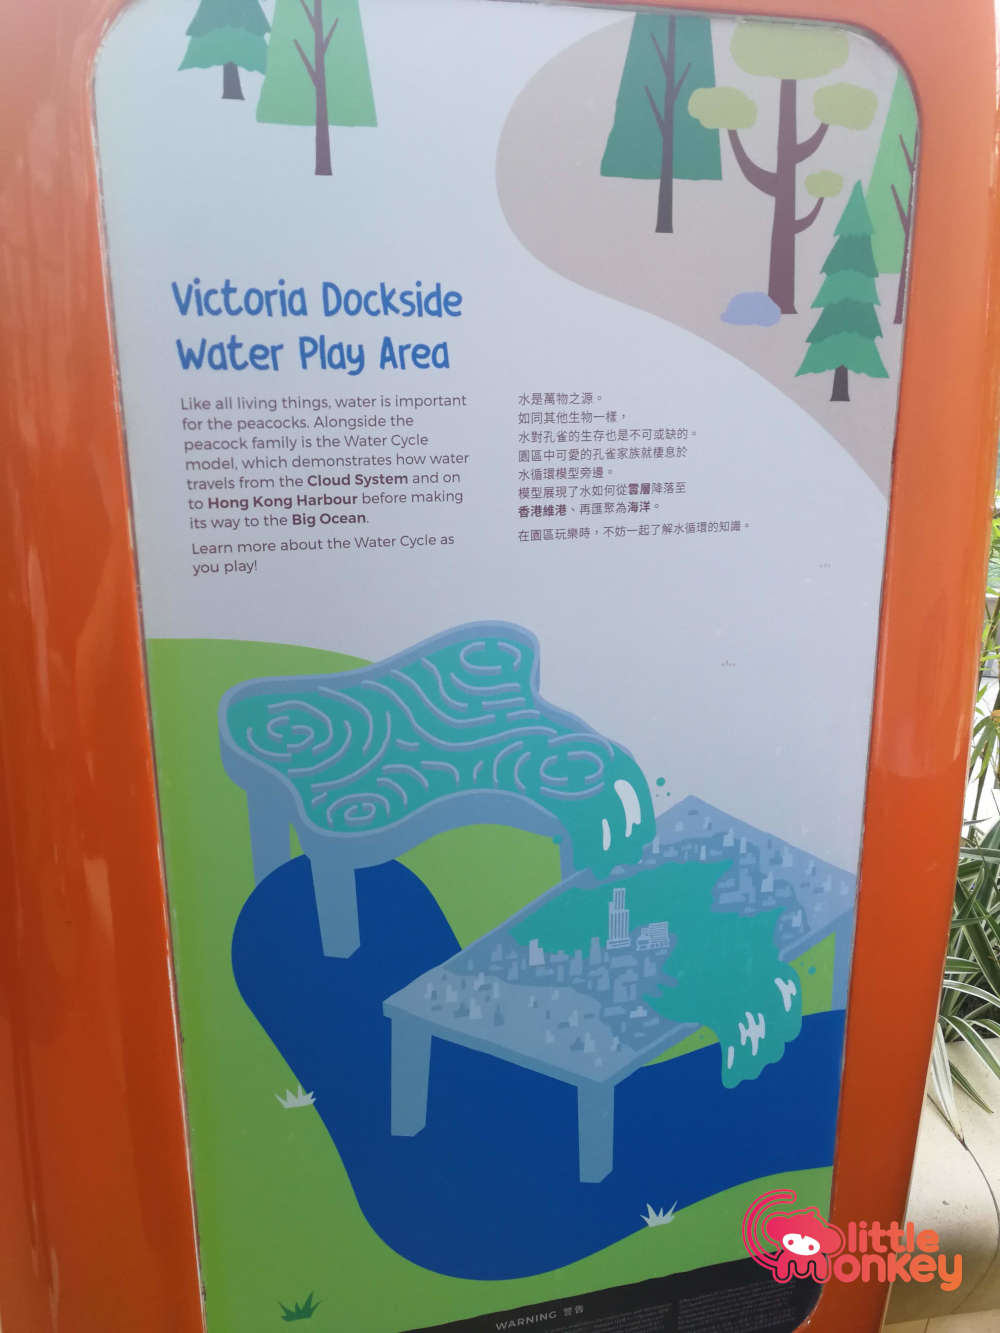 K11 Musea Water Play Area Sign